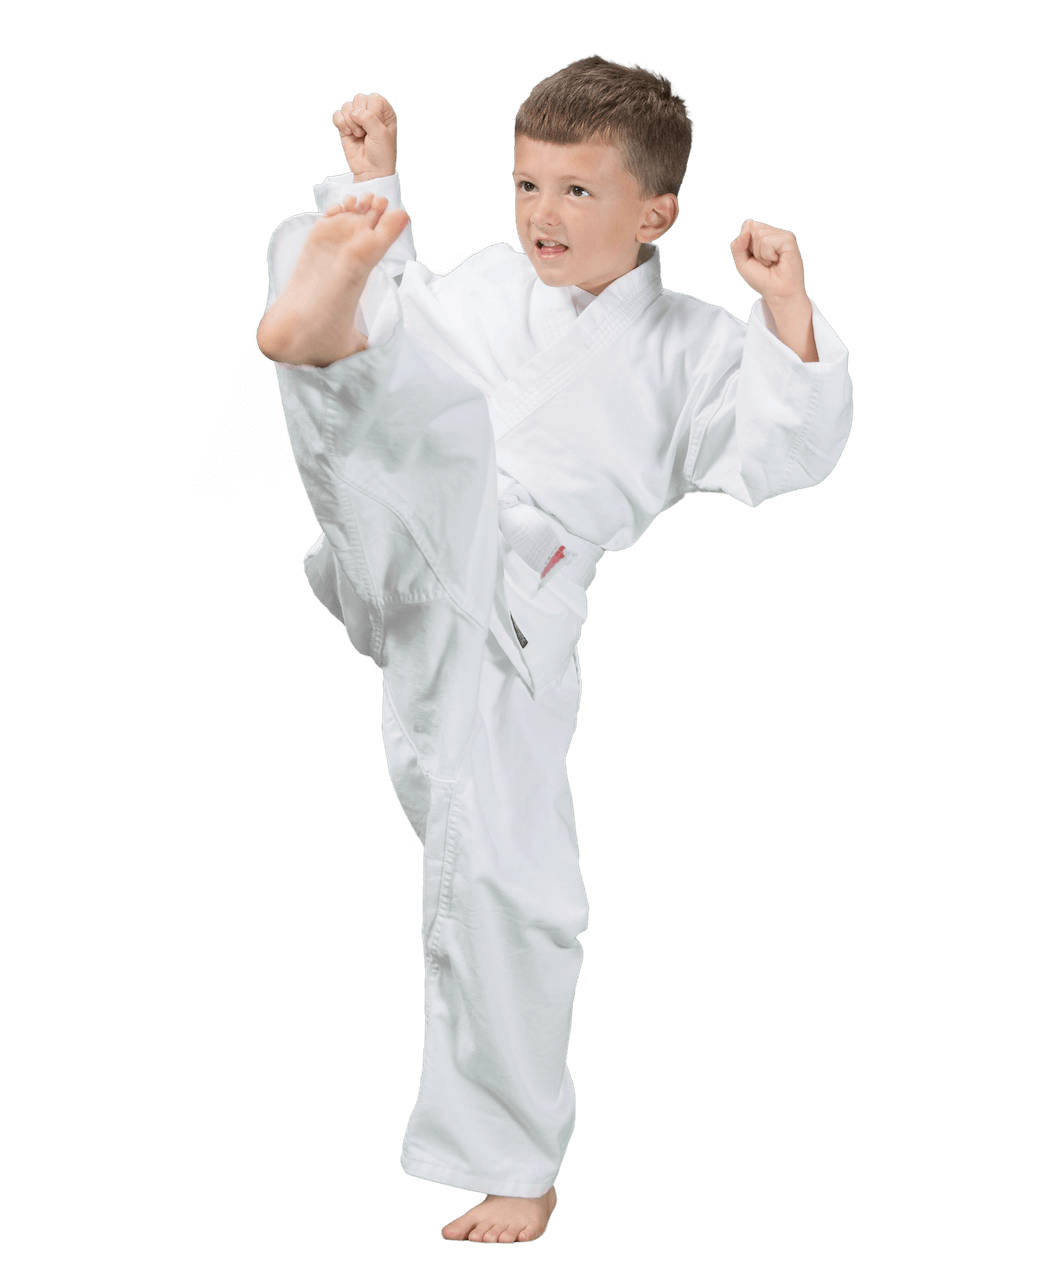 Physical Development - Young children have typically low muscle tone in their core, arms and legs. So, it is very important for kids to build muscular strength and agility through activities such as martial arts.Martial arts can provide one of the best full body exercises for your child. Our goal is to help your child develop stronger body through fun kicking, punching and jumping drills.They will even learn how to stand on one leg without falling and stand or sit without slouching.